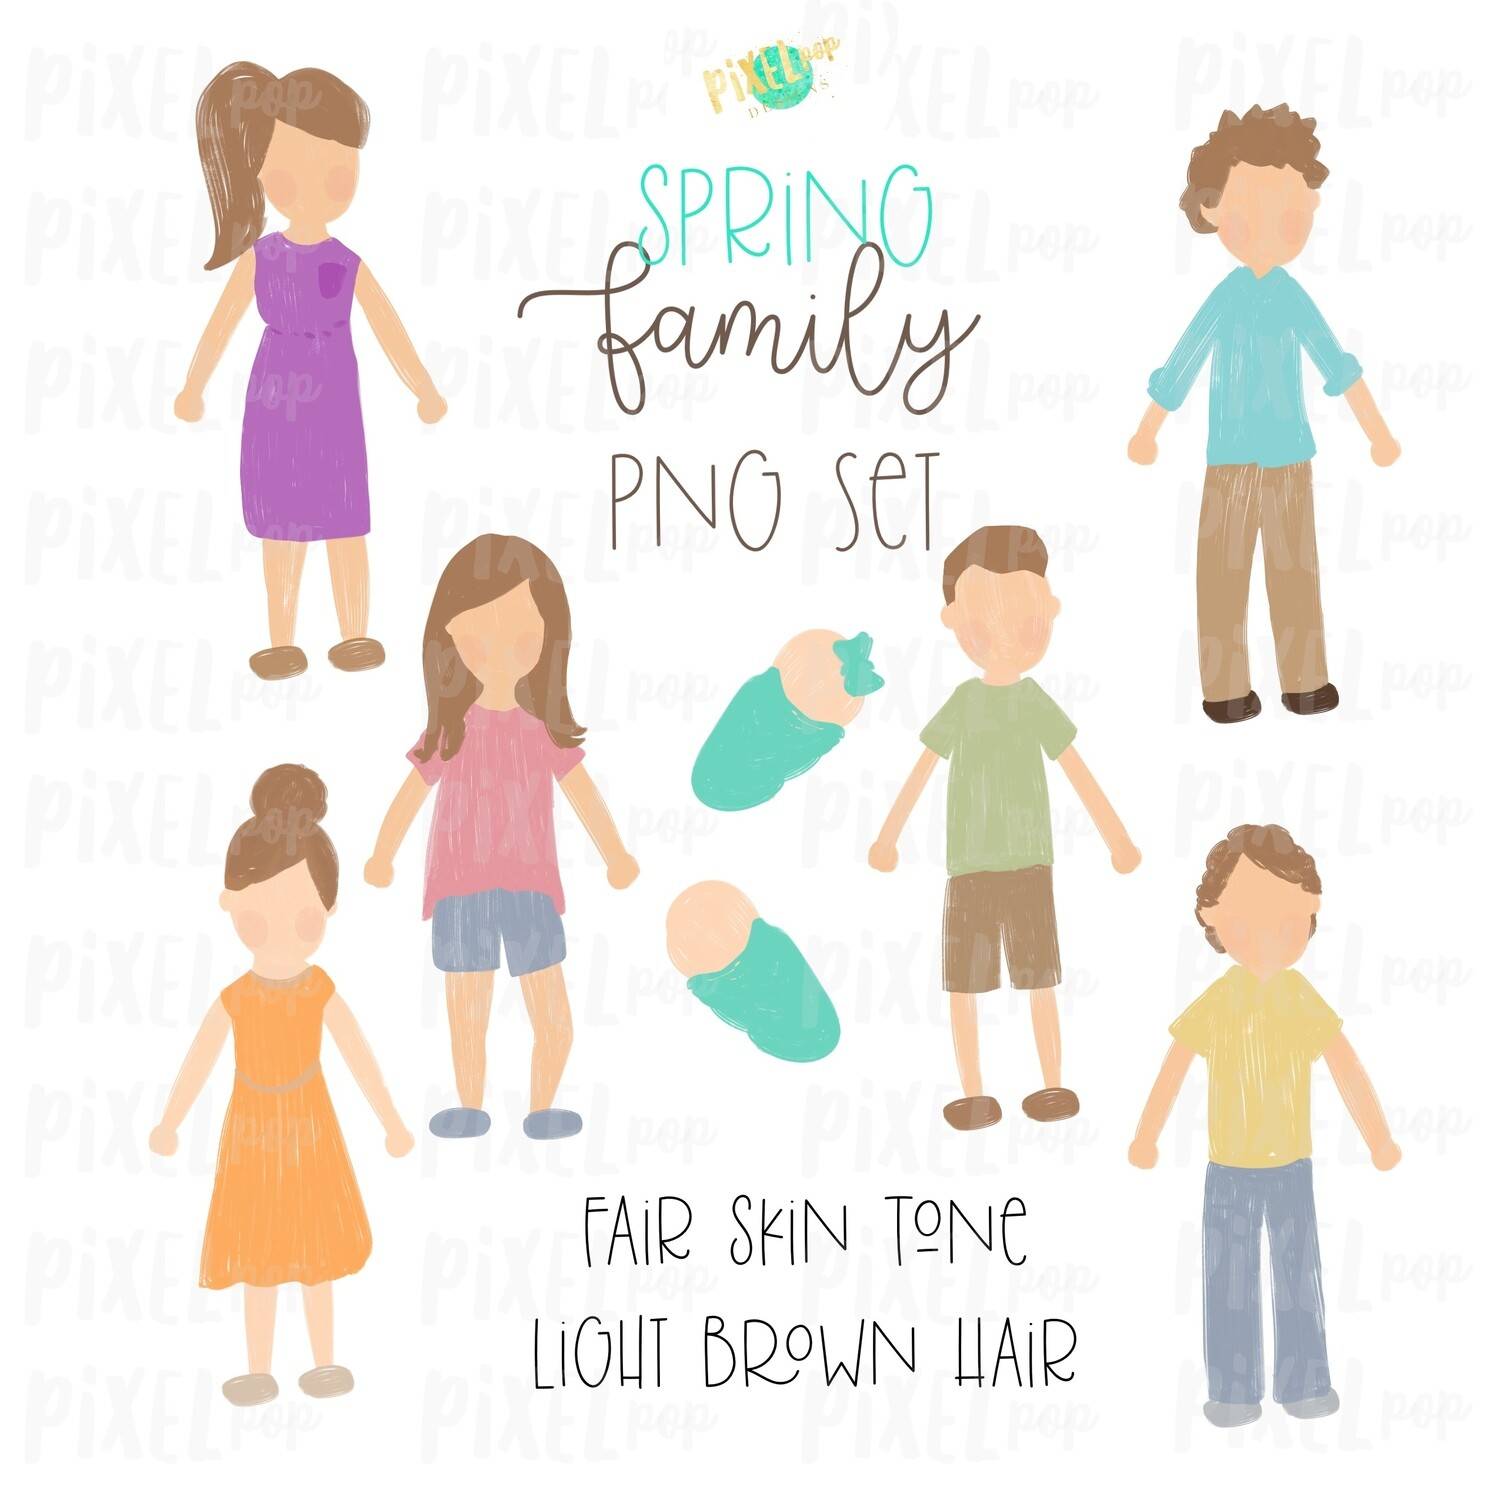 SPRING Fair Skin Light Brown Hair Stick People Figure Family PNG Sublimation | Family Ornament | Family Portrait Images | Digital Download